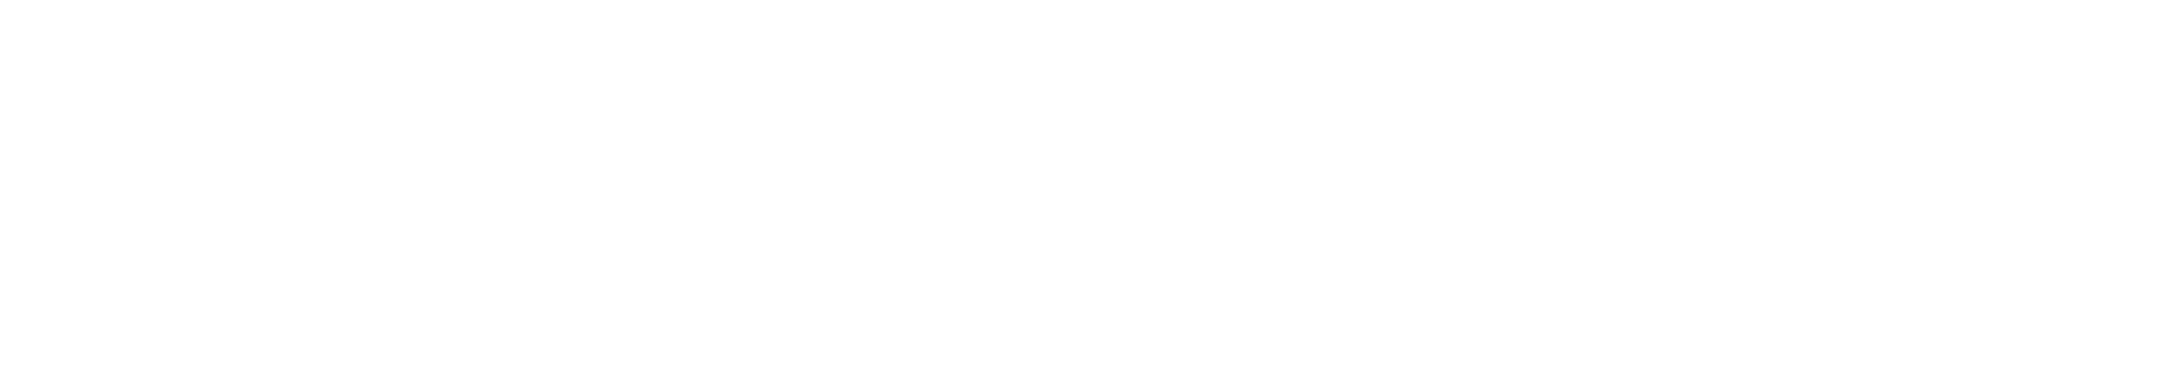 Phaseshift Logo_1_White.png